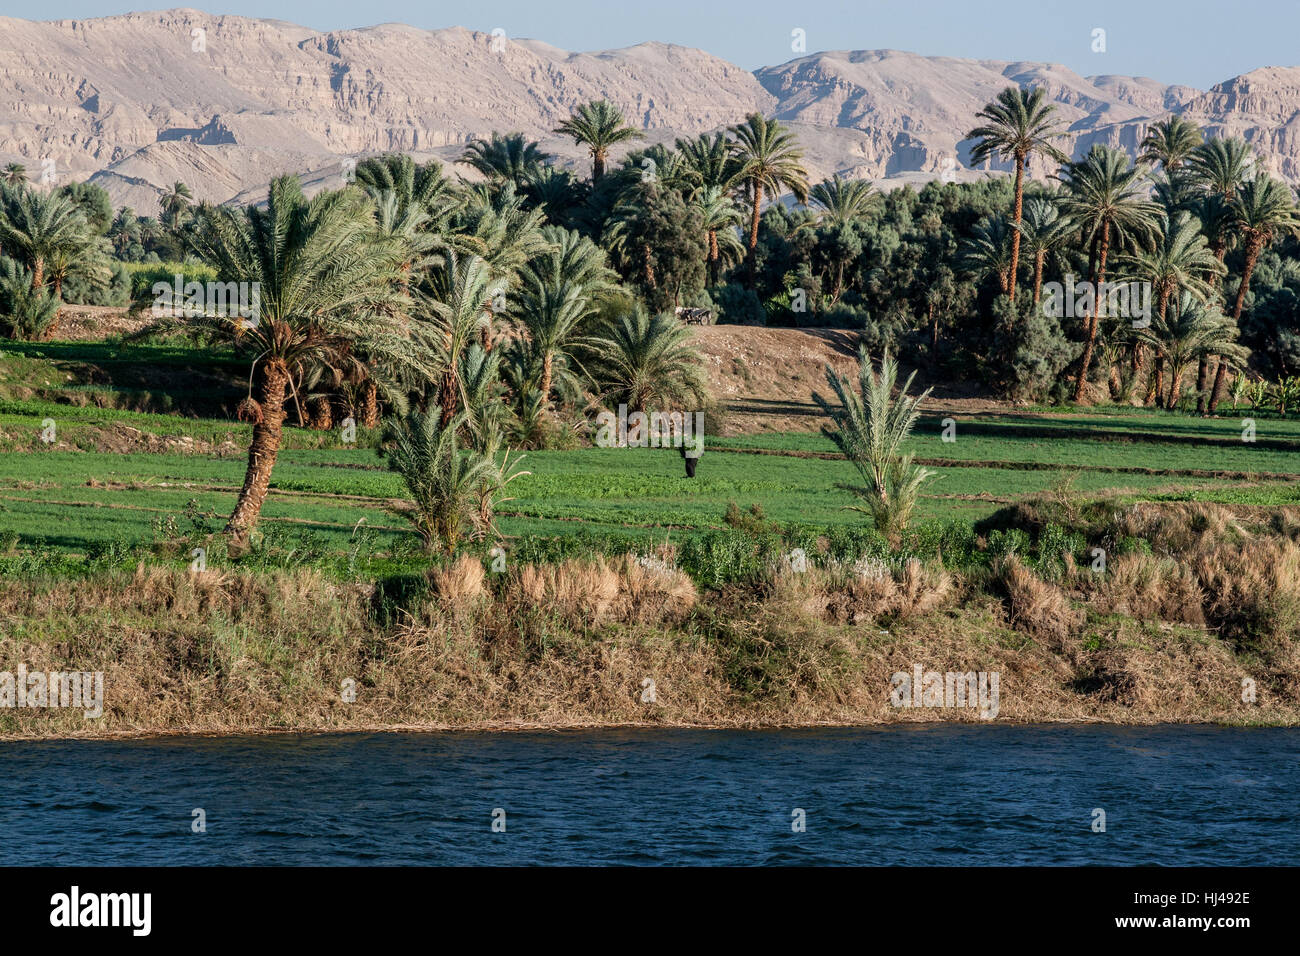 worker in the field hauling crops along the nile river